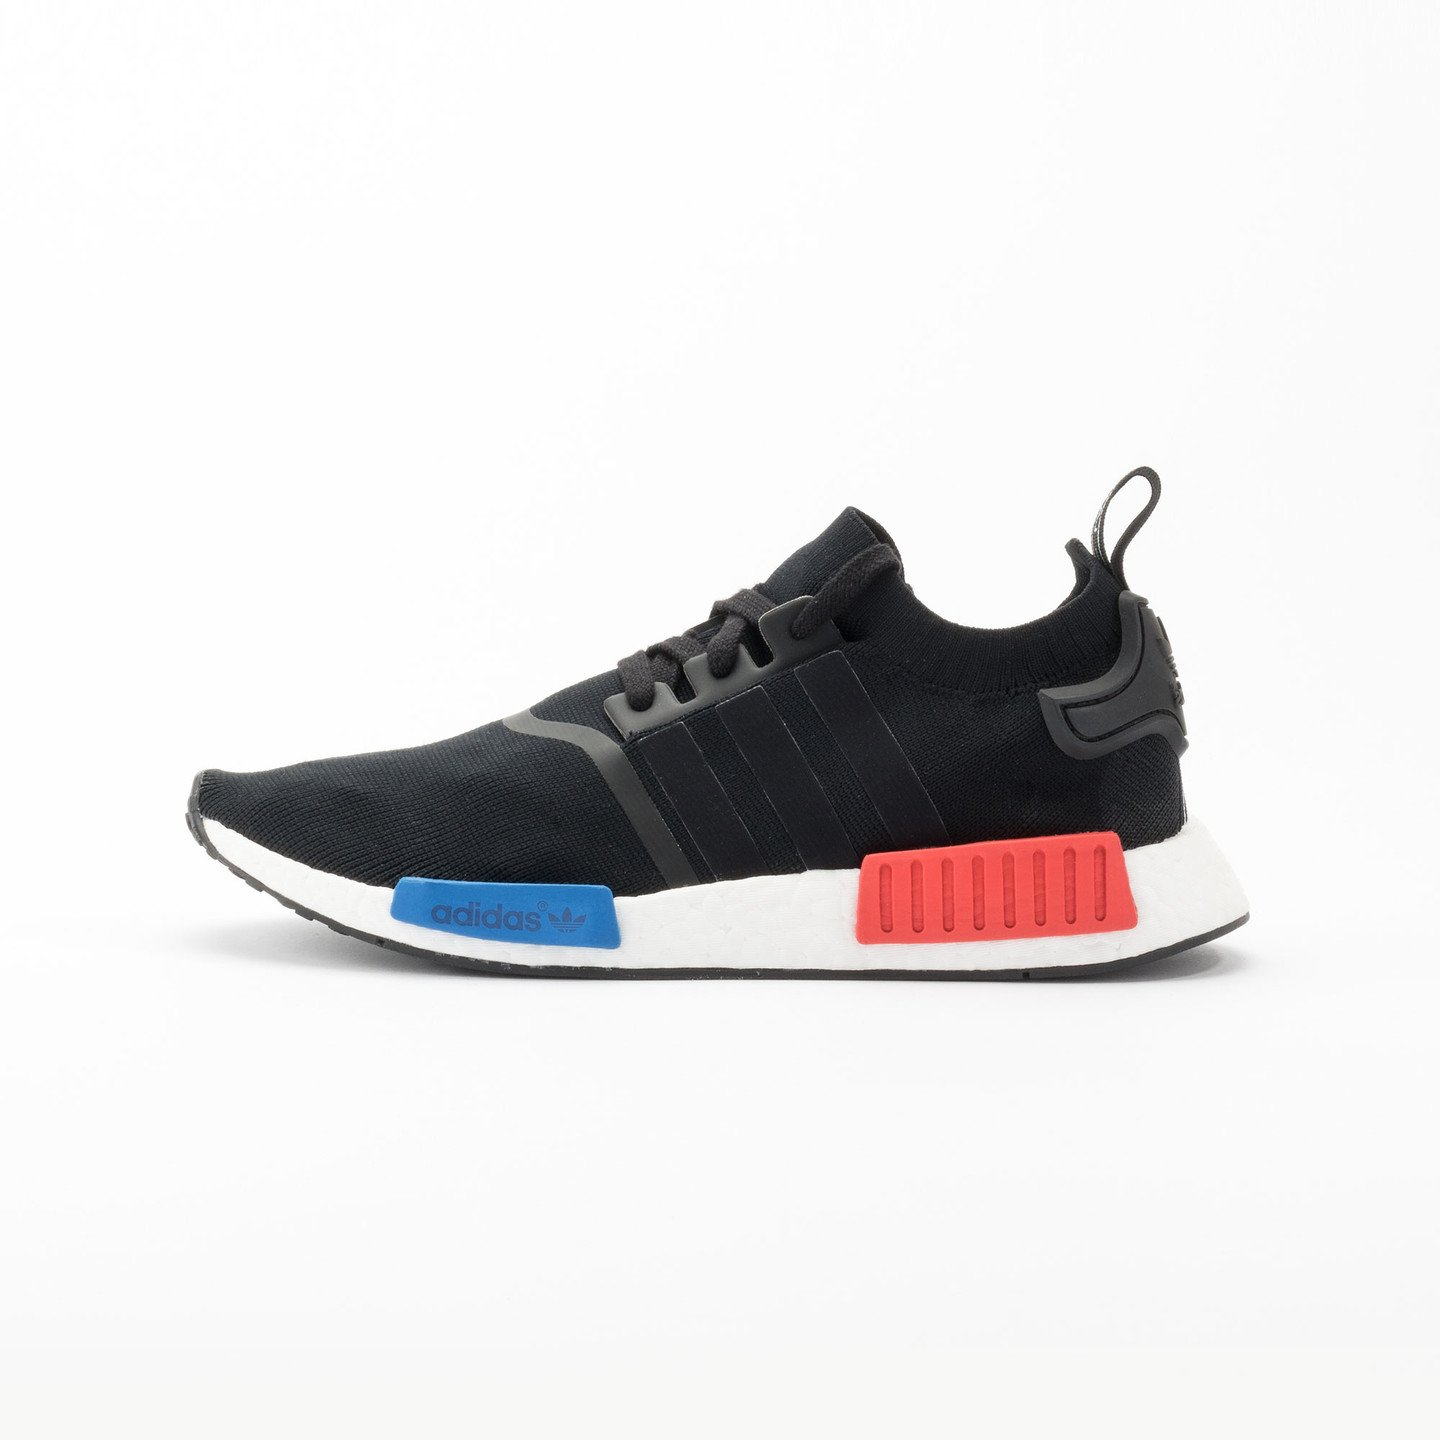 Adidas NMD Runner PK Primeknit Black / Red / Blue / White S79168-39.33